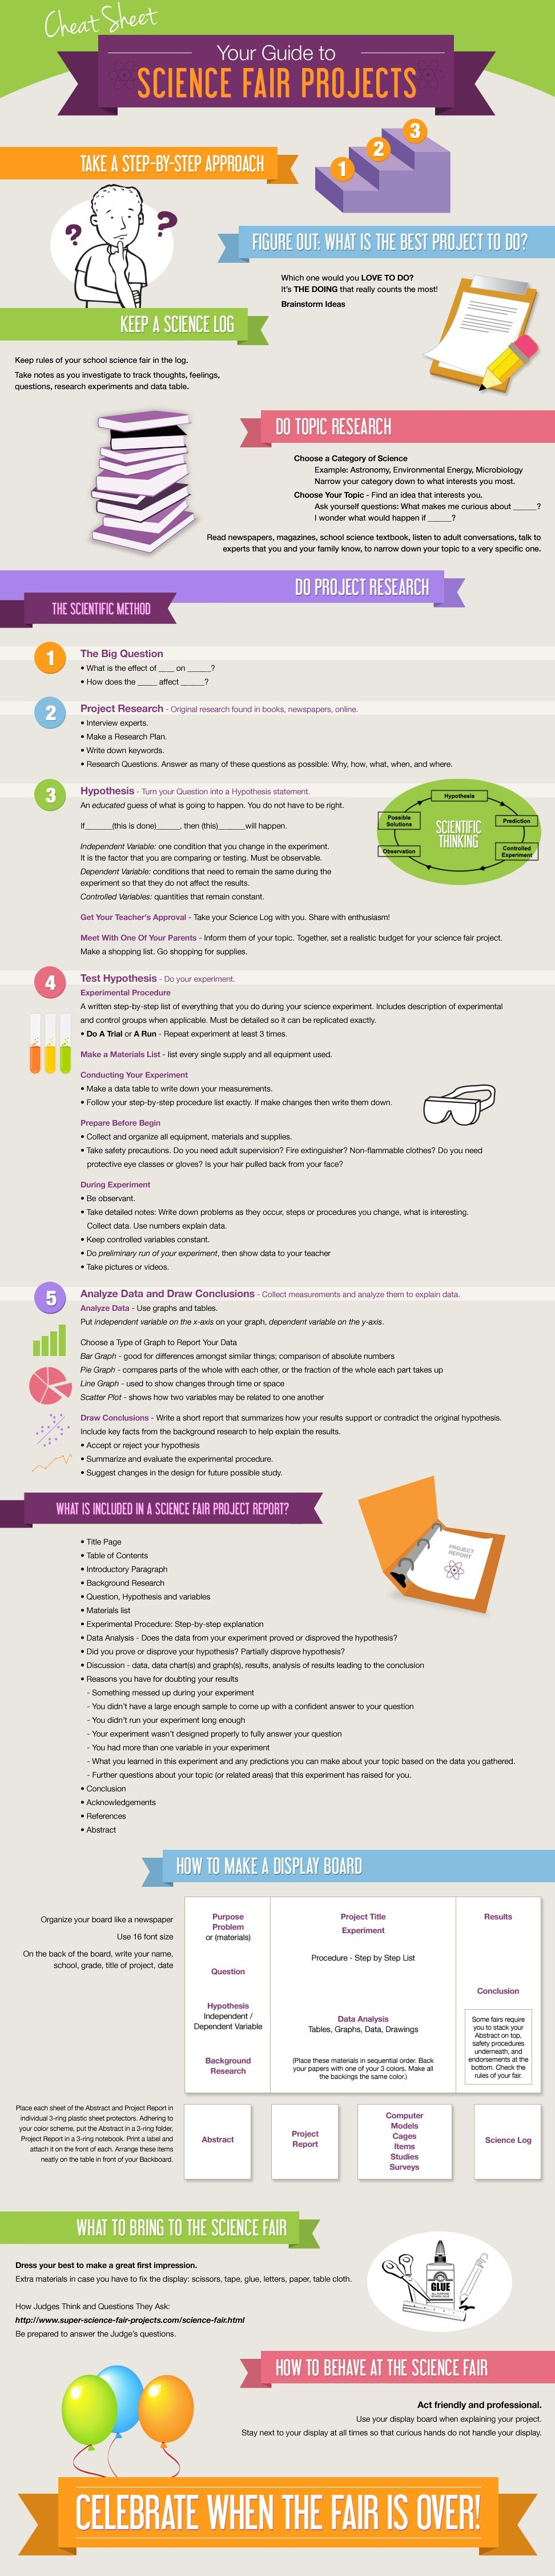 How To Do A Science Fair Project Infographic Science Fair Projects Boards Science Fair Projects Cool Science Fair Projects